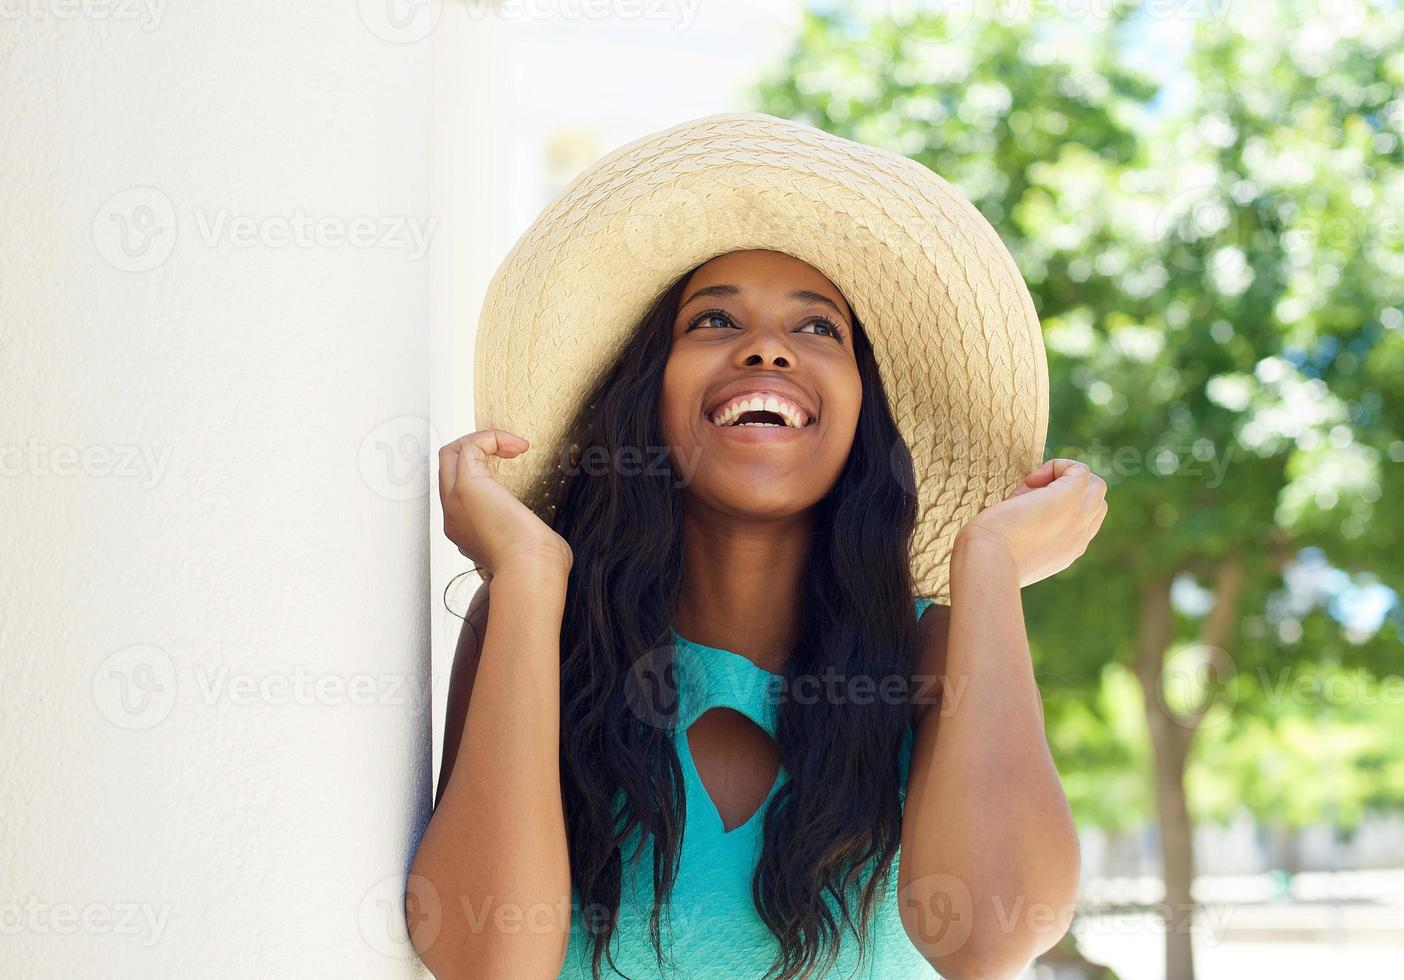 Smiling african american model with sun hat photo